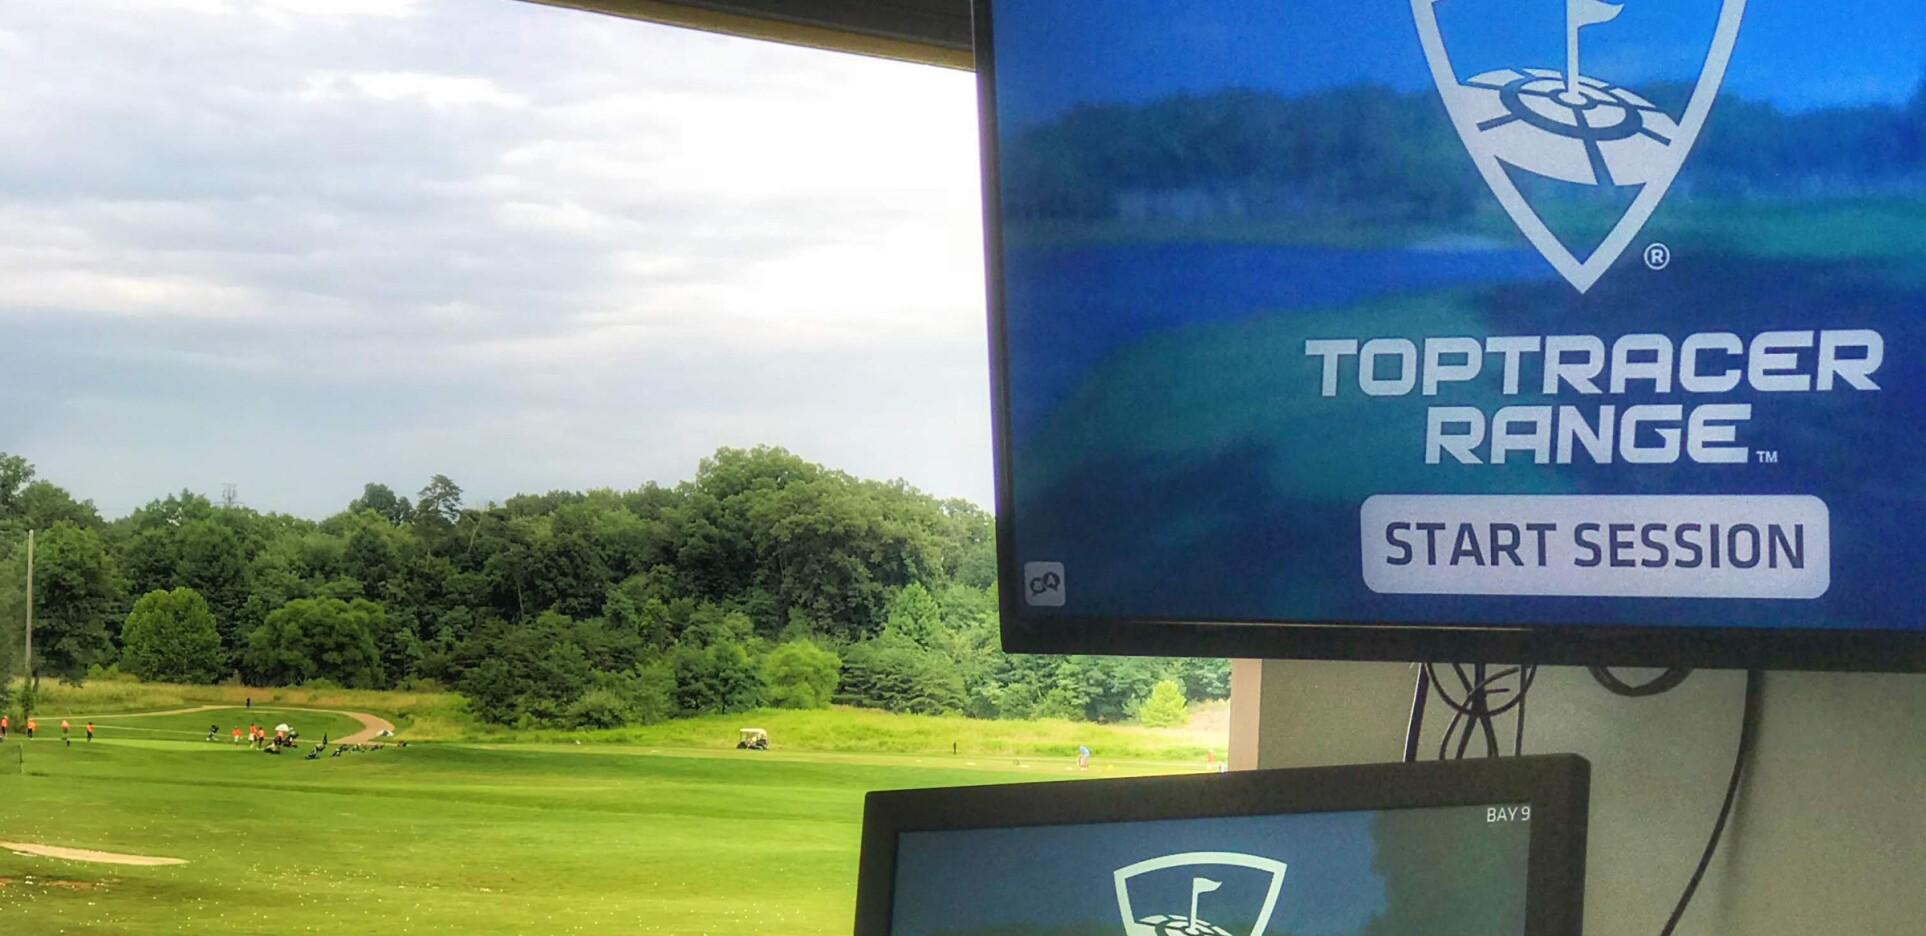 Toptracer Technology at 1757 Golf Club, Northern Virginia